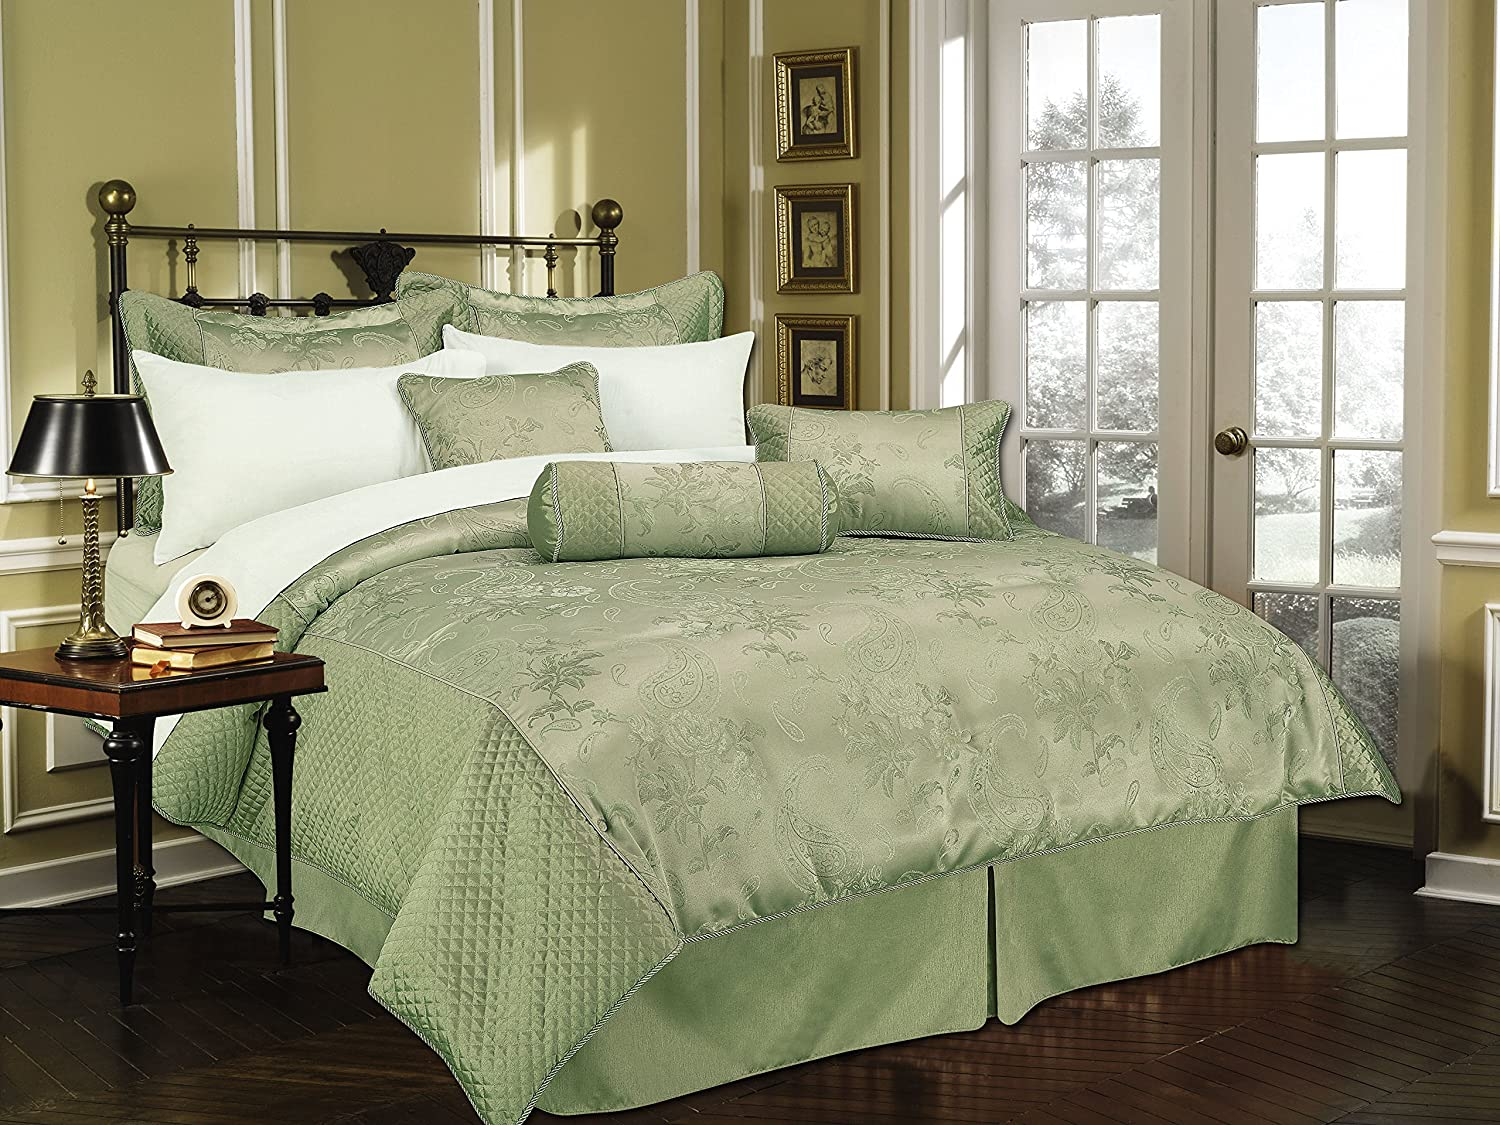 Livingston Home New Brand Great Home Decor Comforter, Queen, Sage